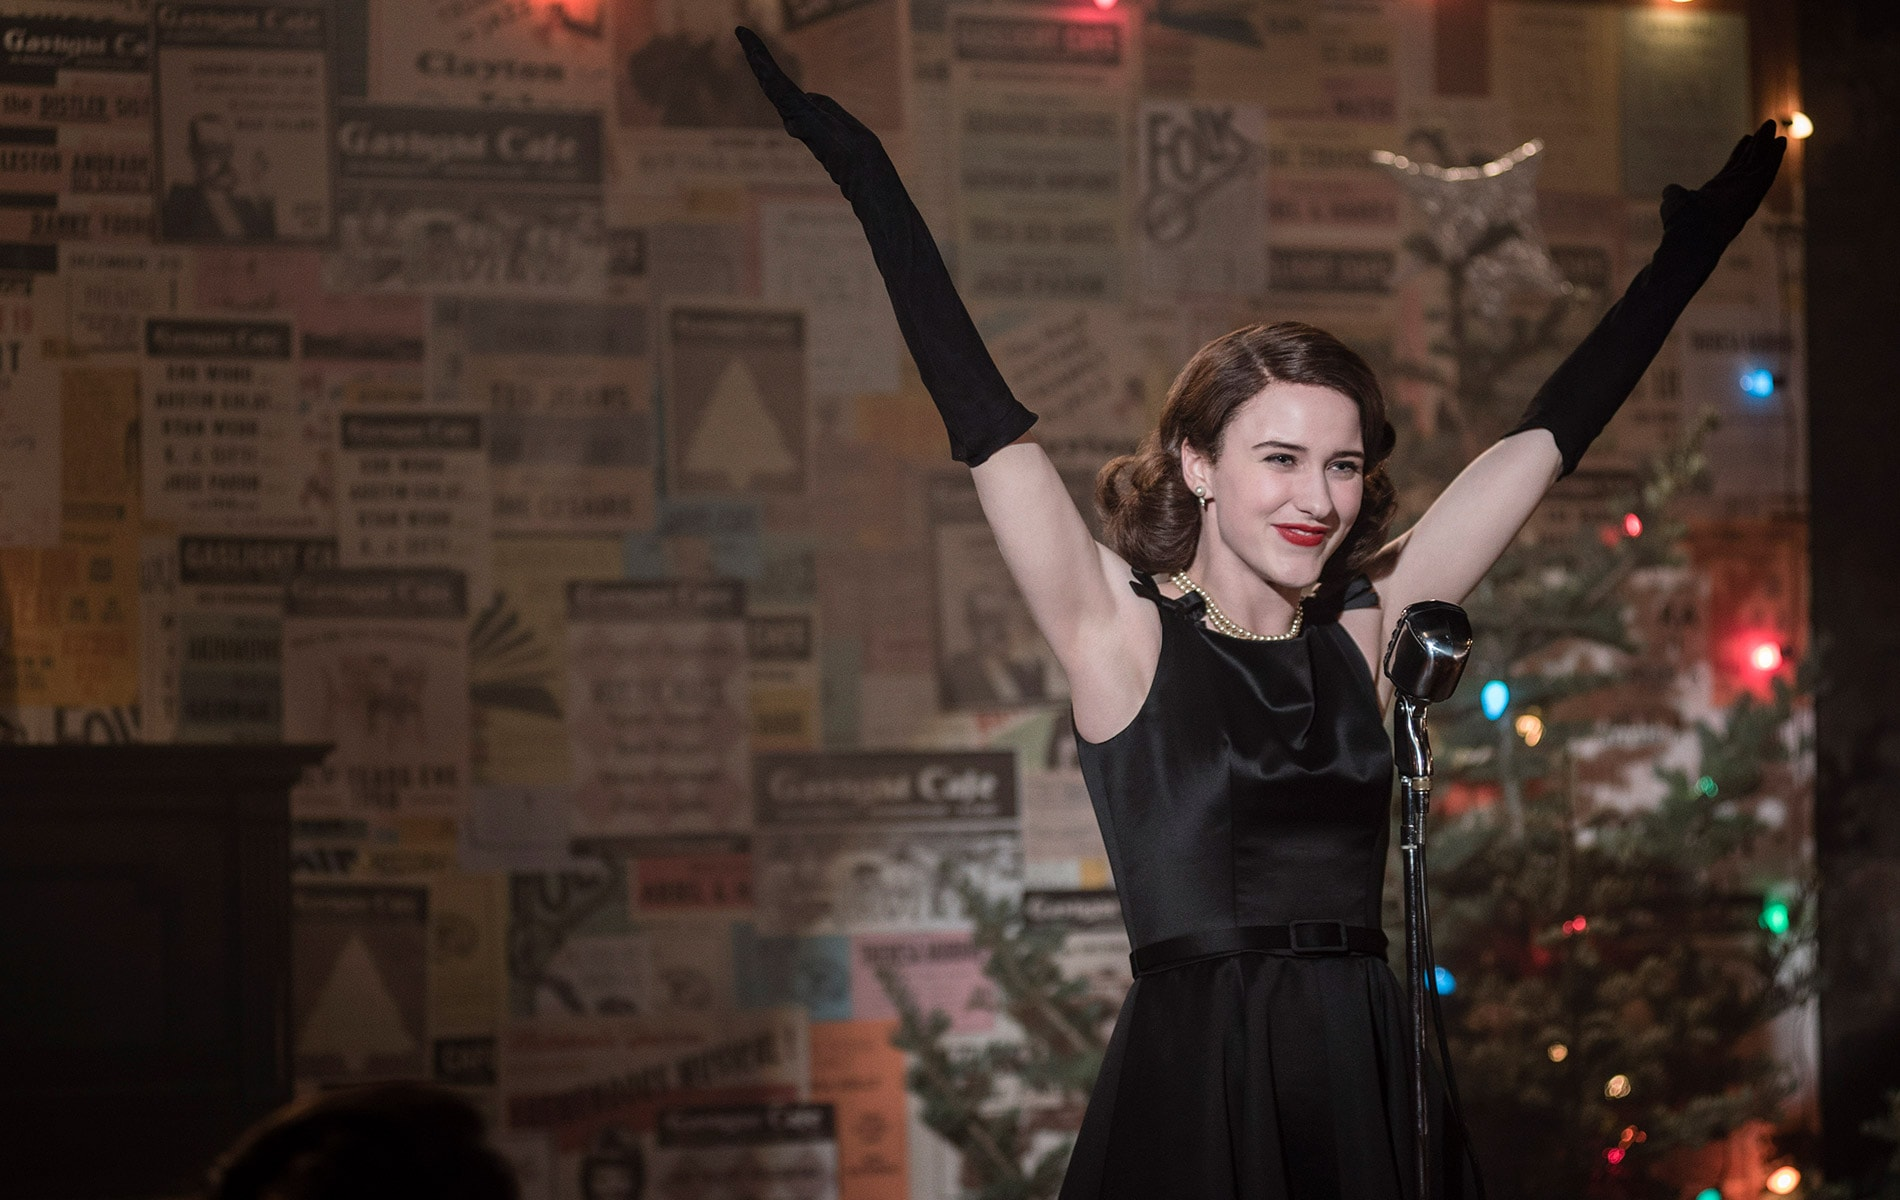 Rachel Brosnahan acting in Season 1 of The Marvelous Mrs. Maisel on stage with her arms thrown in the arm in excitement.